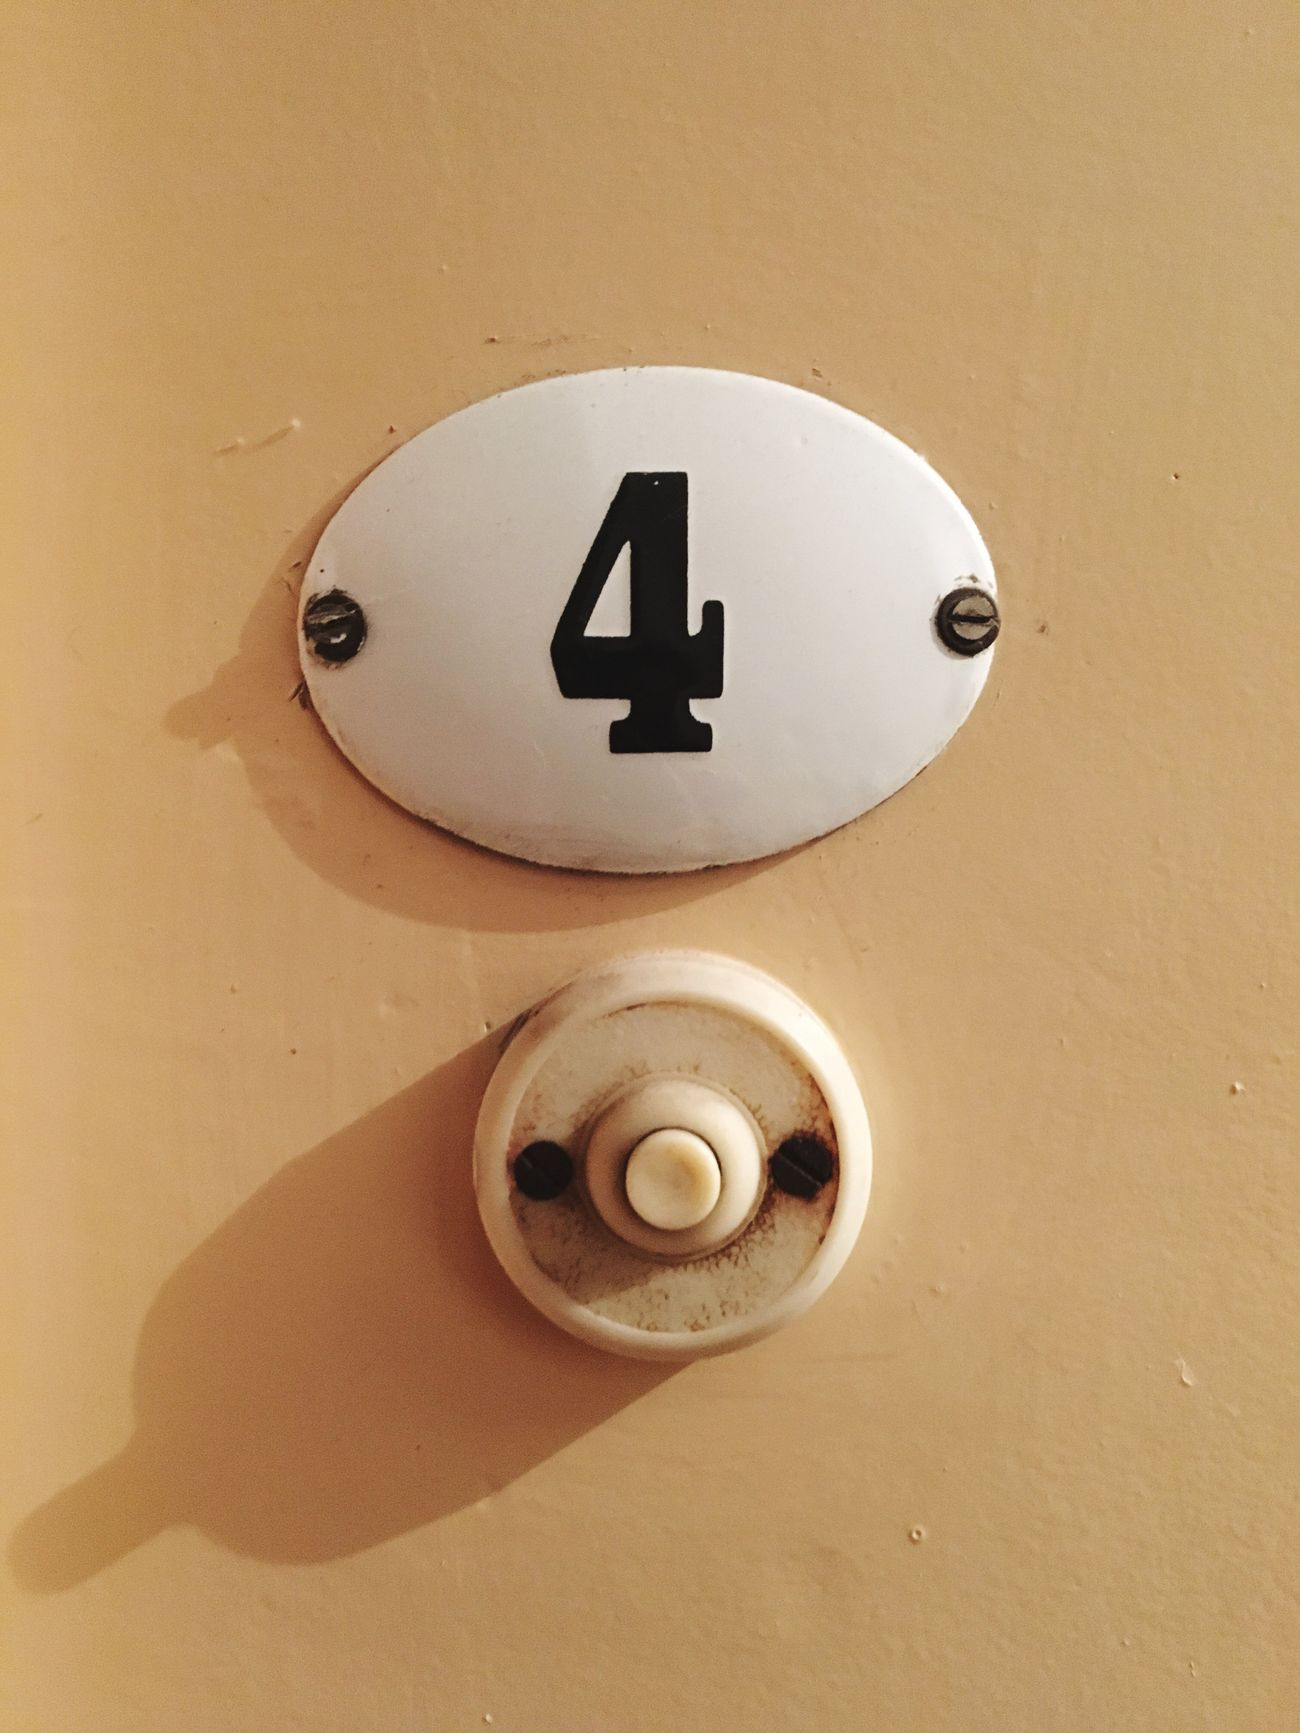 Los Amigos Del Departamento 4 Apartment Door Number Door EyeEm Best Shots EyeEmBestPics